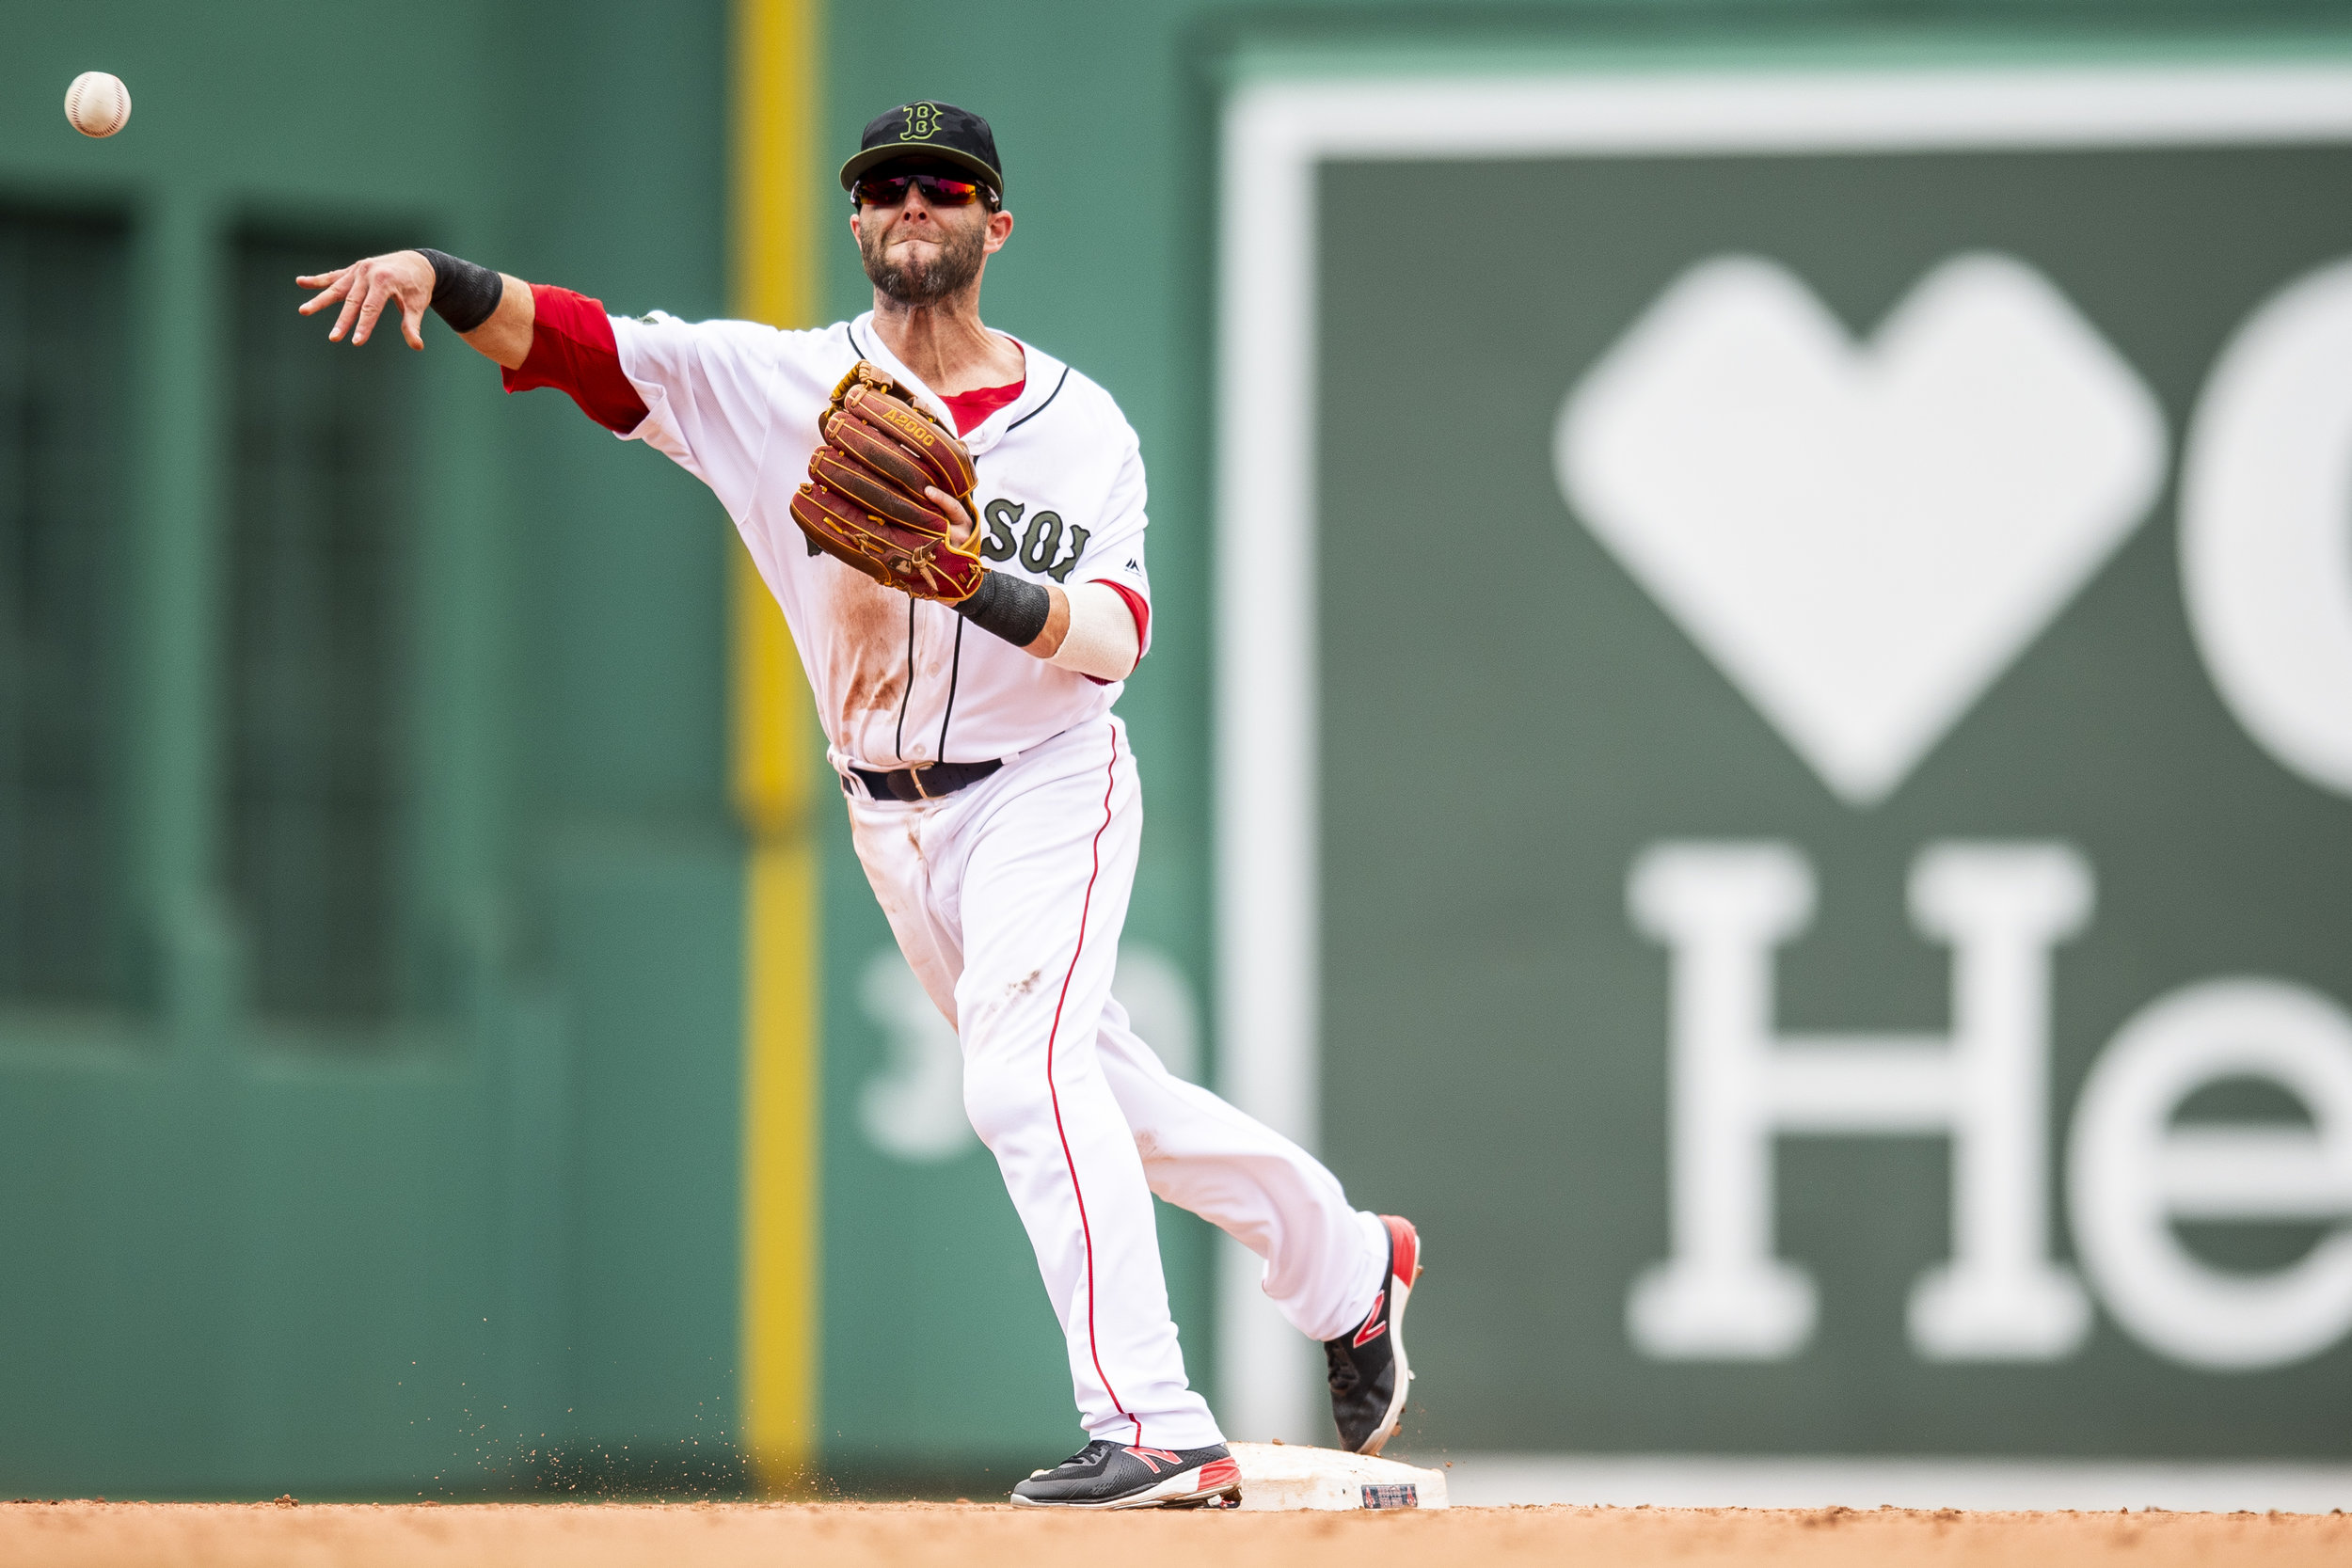 May 26, 2018, Boston, MA: Boston Red Sox second basemen Dustin Pedroia throws the ball from second base turning a double play as the Boston Red Sox face the Atlanta Braves at Fenway Park in Boston, Massachusetts on Saturday, May 26, 2018. (Photo by Matthew Thomas/Boston Red Sox)